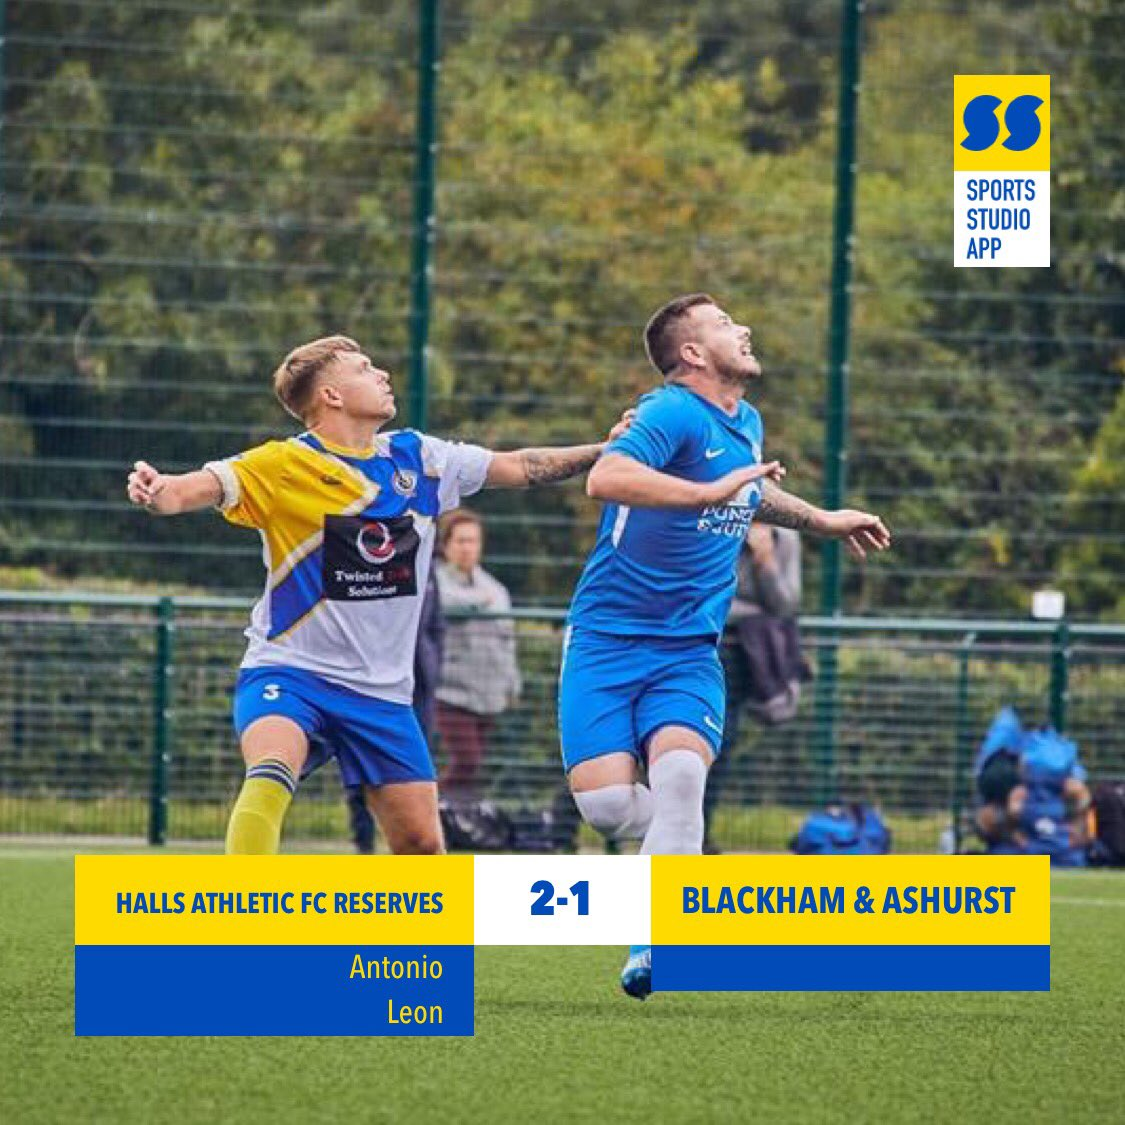 test Twitter Media - Reserves return back to winning ways today with a well earned 2-1 win. Goals from @Matano18 and @LeonSlone1 💛💙💛💙#HAFC #100thseason https://t.co/mNm8lk1zlW